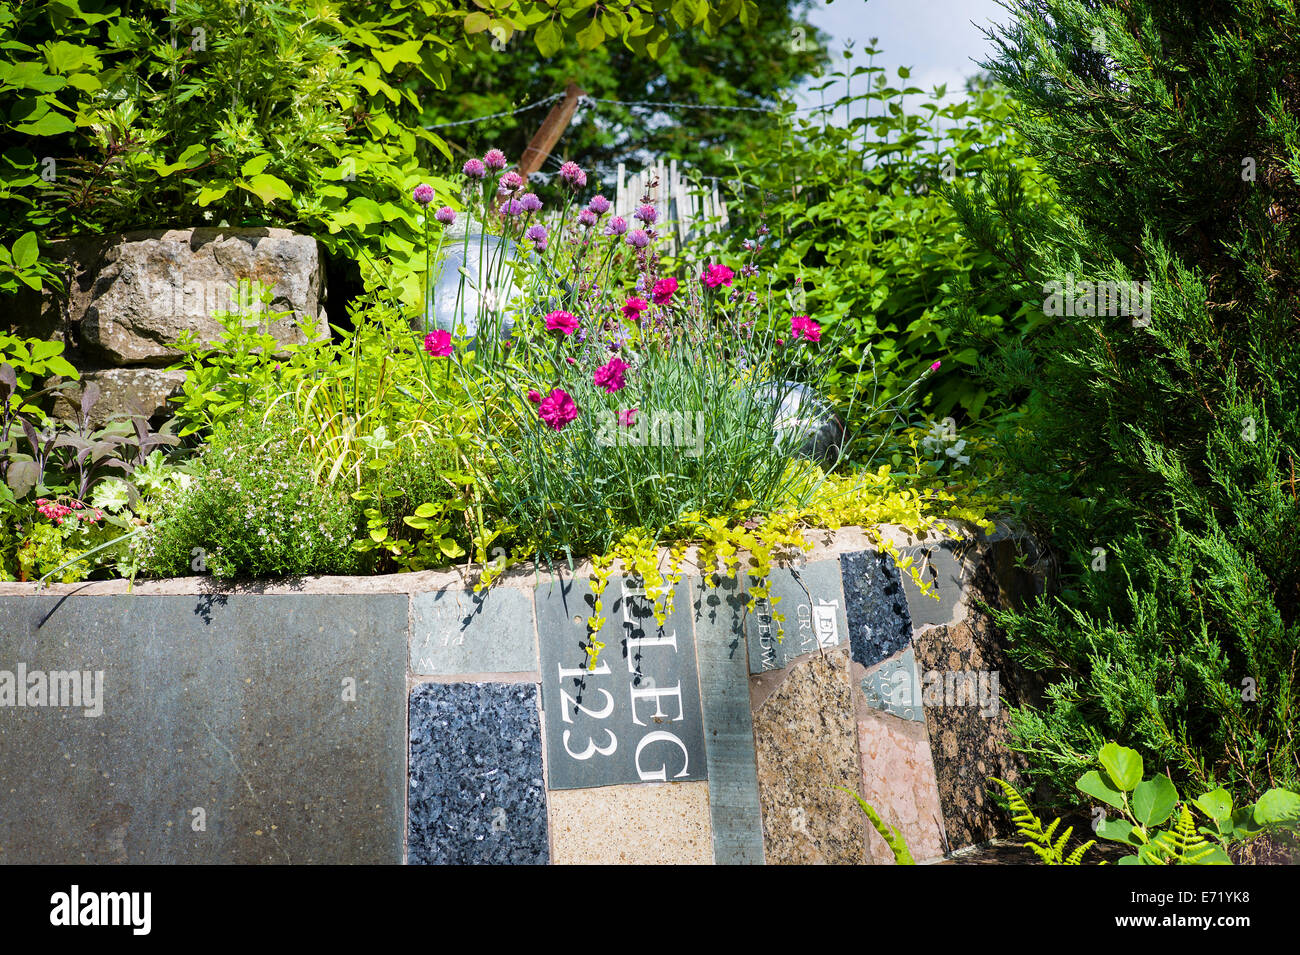 Small secition of an educational garden made from collected scrap pieces by Council services - Stock Image